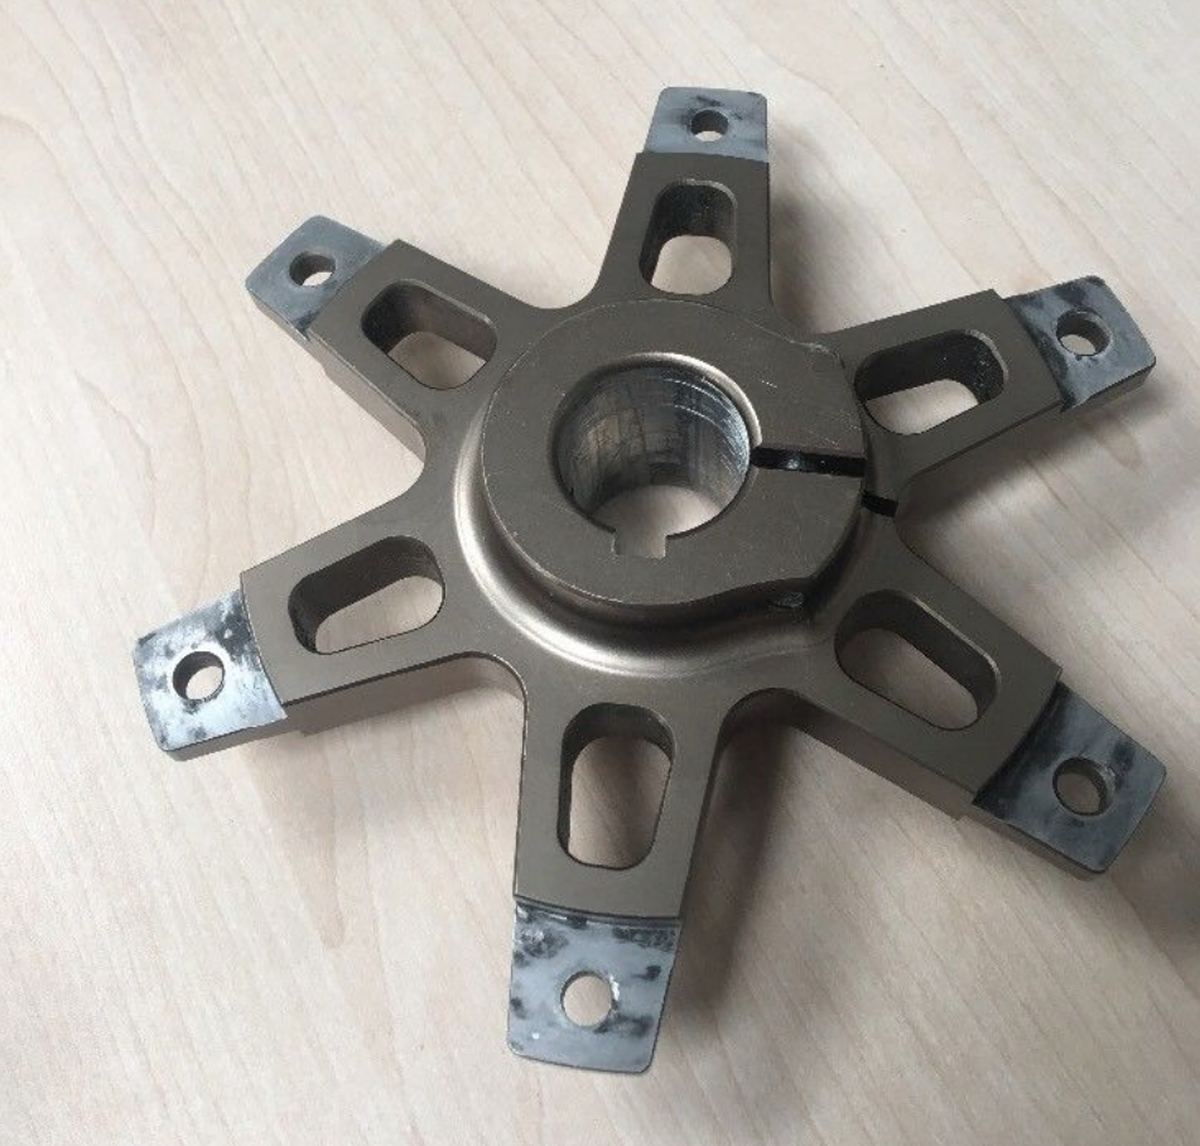 IPK Cadet 25mm Go Kart Sprocket Carrier - Essex